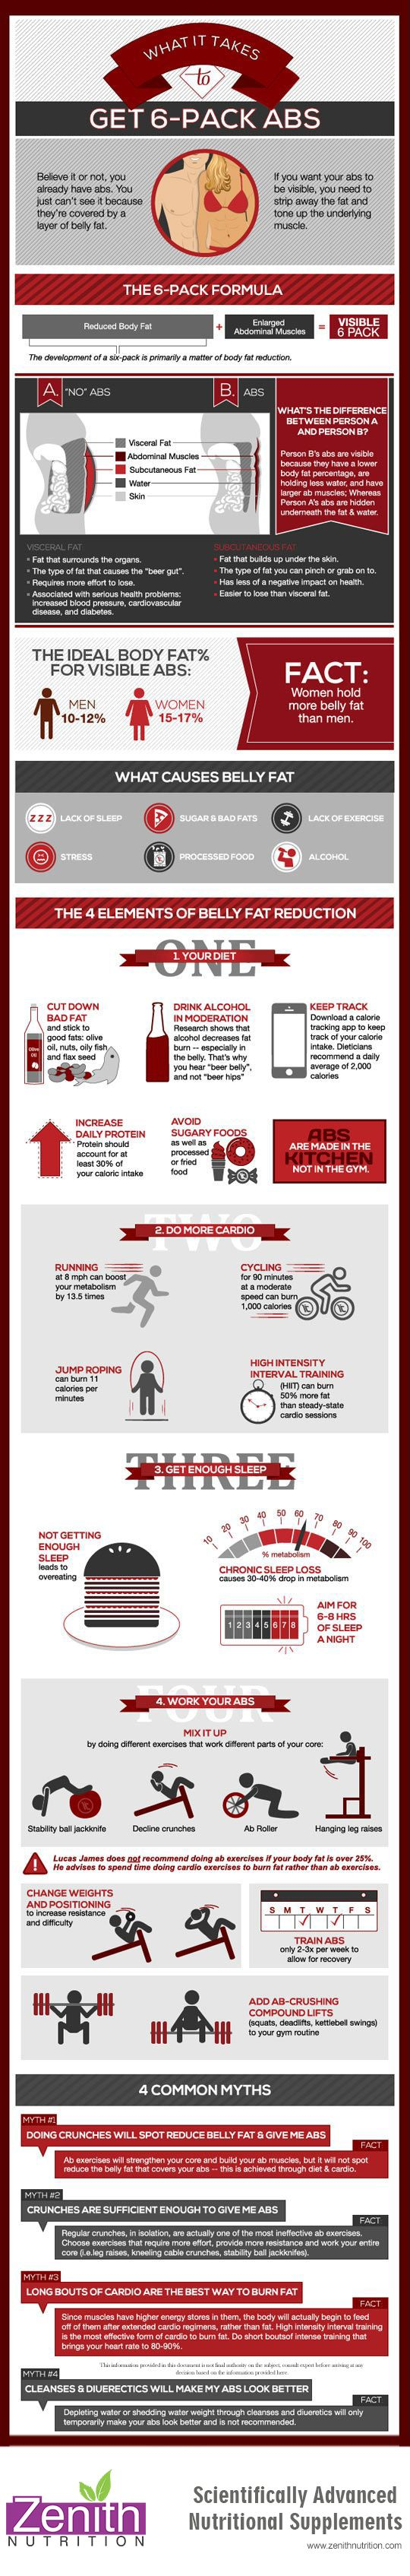 What it Take To Get 6-Pack Abs. The 6-pack formula, the ideal body fat% for visible abs, fact - women hod more belly fat than man, what causes belly fat, the 4 elements of belly fat reduction, 4 common myths. Best supplements from Zenith Nutrition. Health Supplements. Nutritional Supplements. Health Infographics